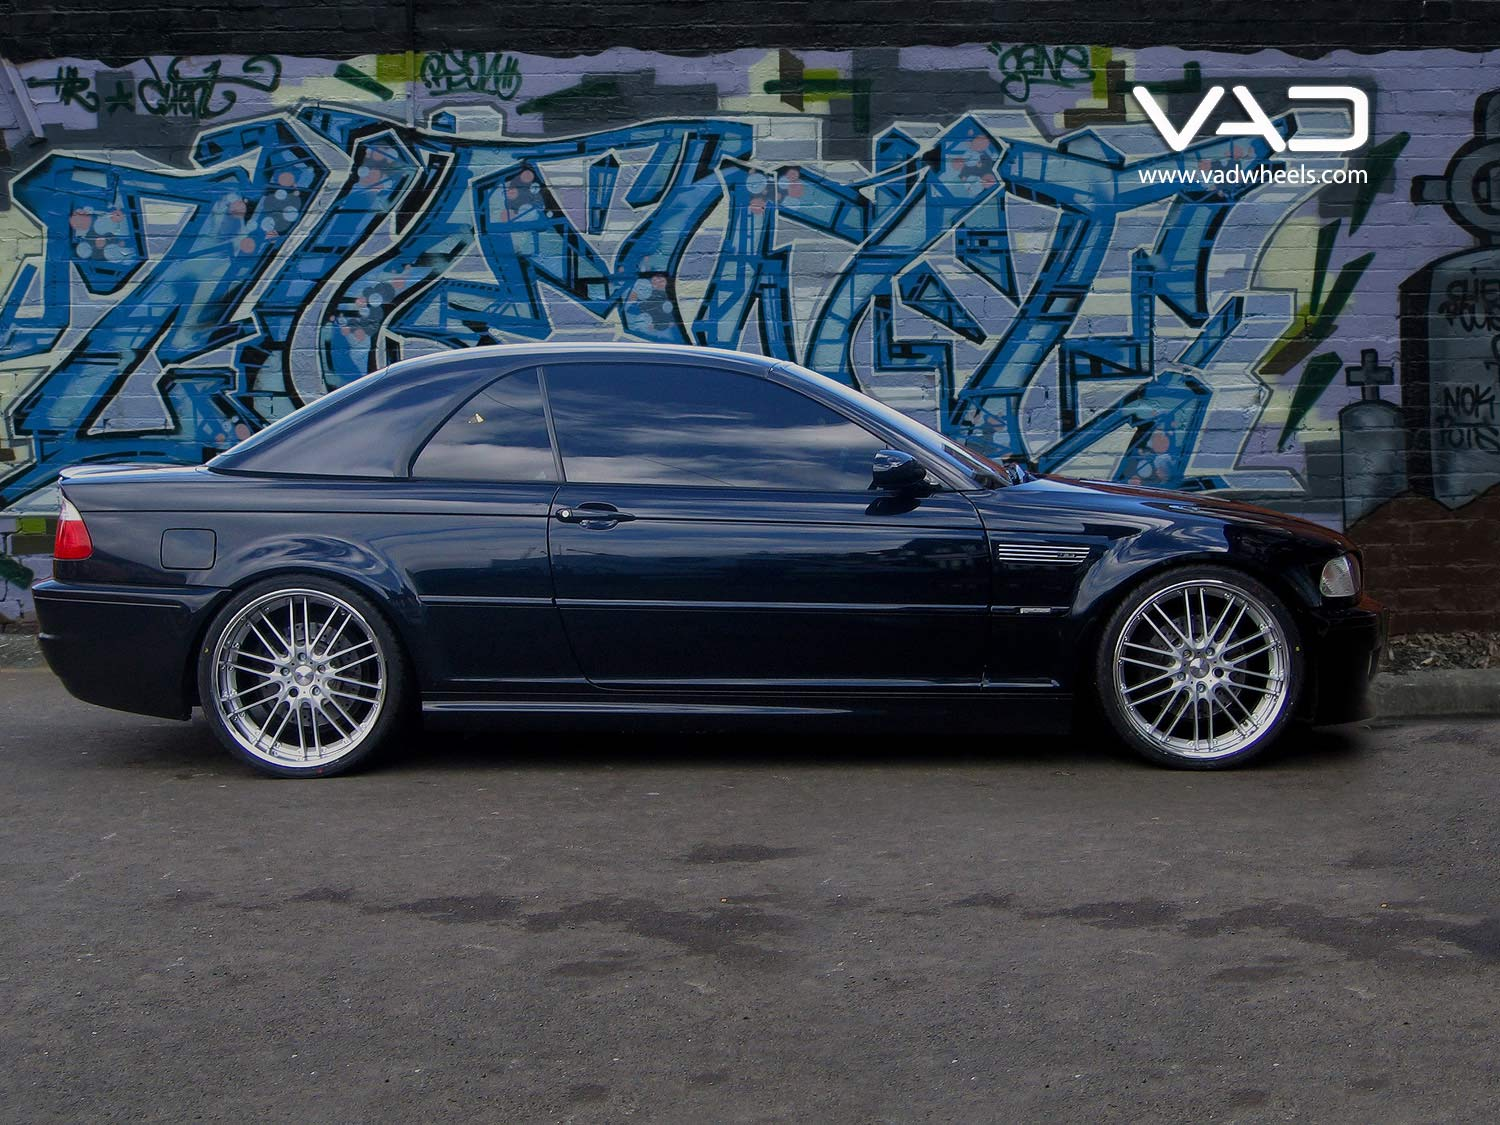 BMW-E46-M3-Cabriolet-Fitted-With-20''-Trafficstar-RTM